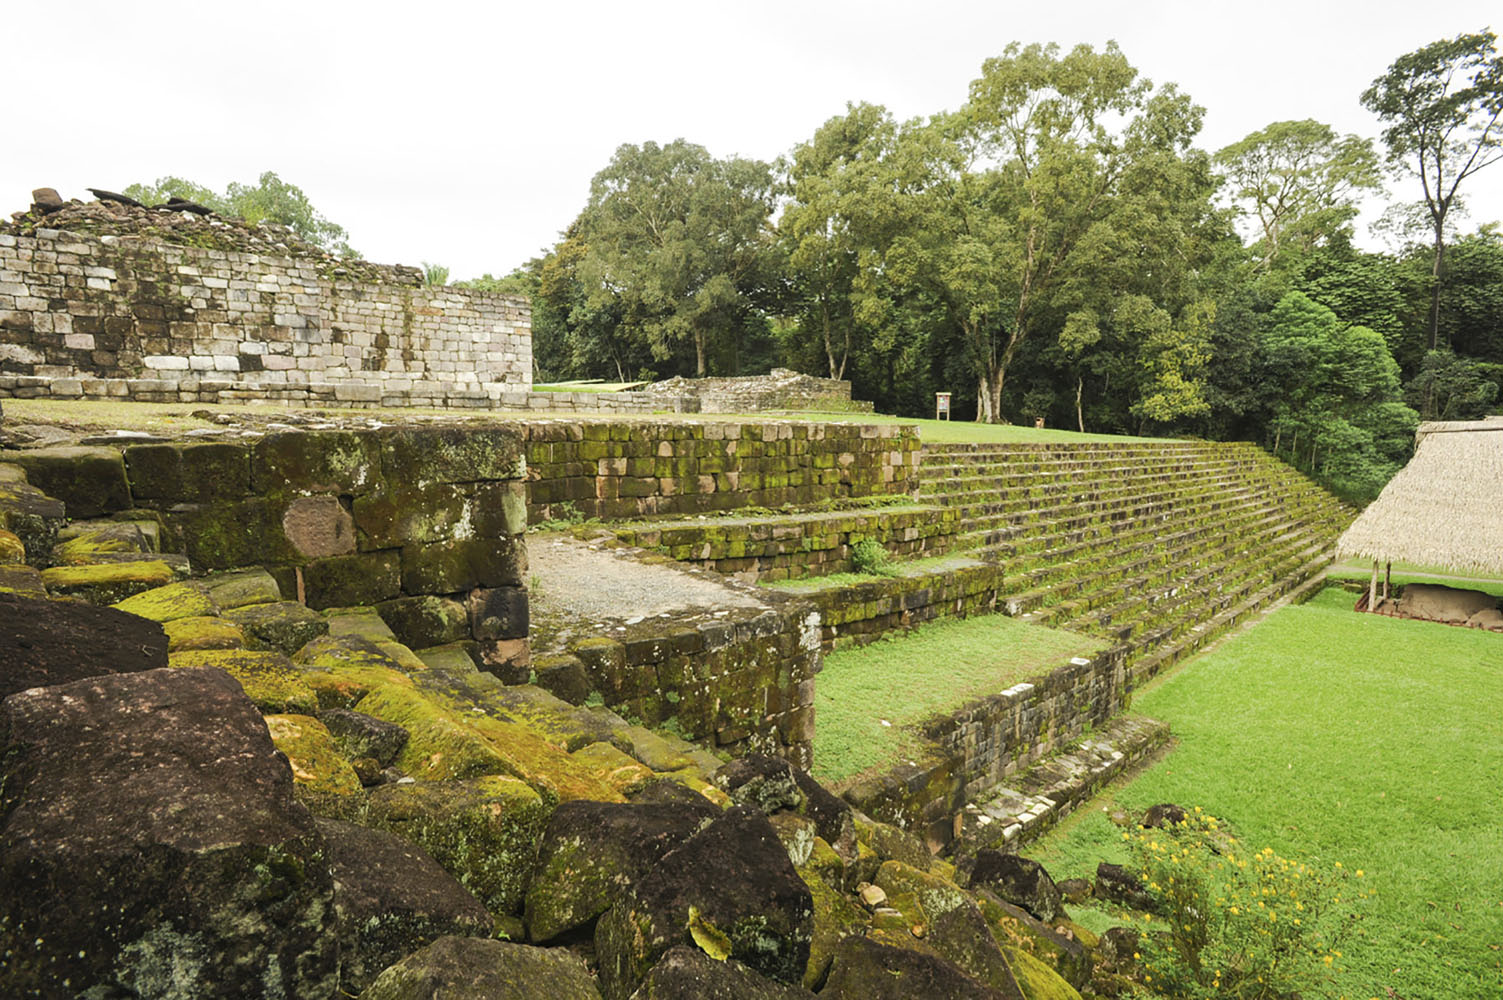 When calling on Santo Tomas de Castilla, Guatemala, you can visit the nearby Mayan ruins of Quiriguá.